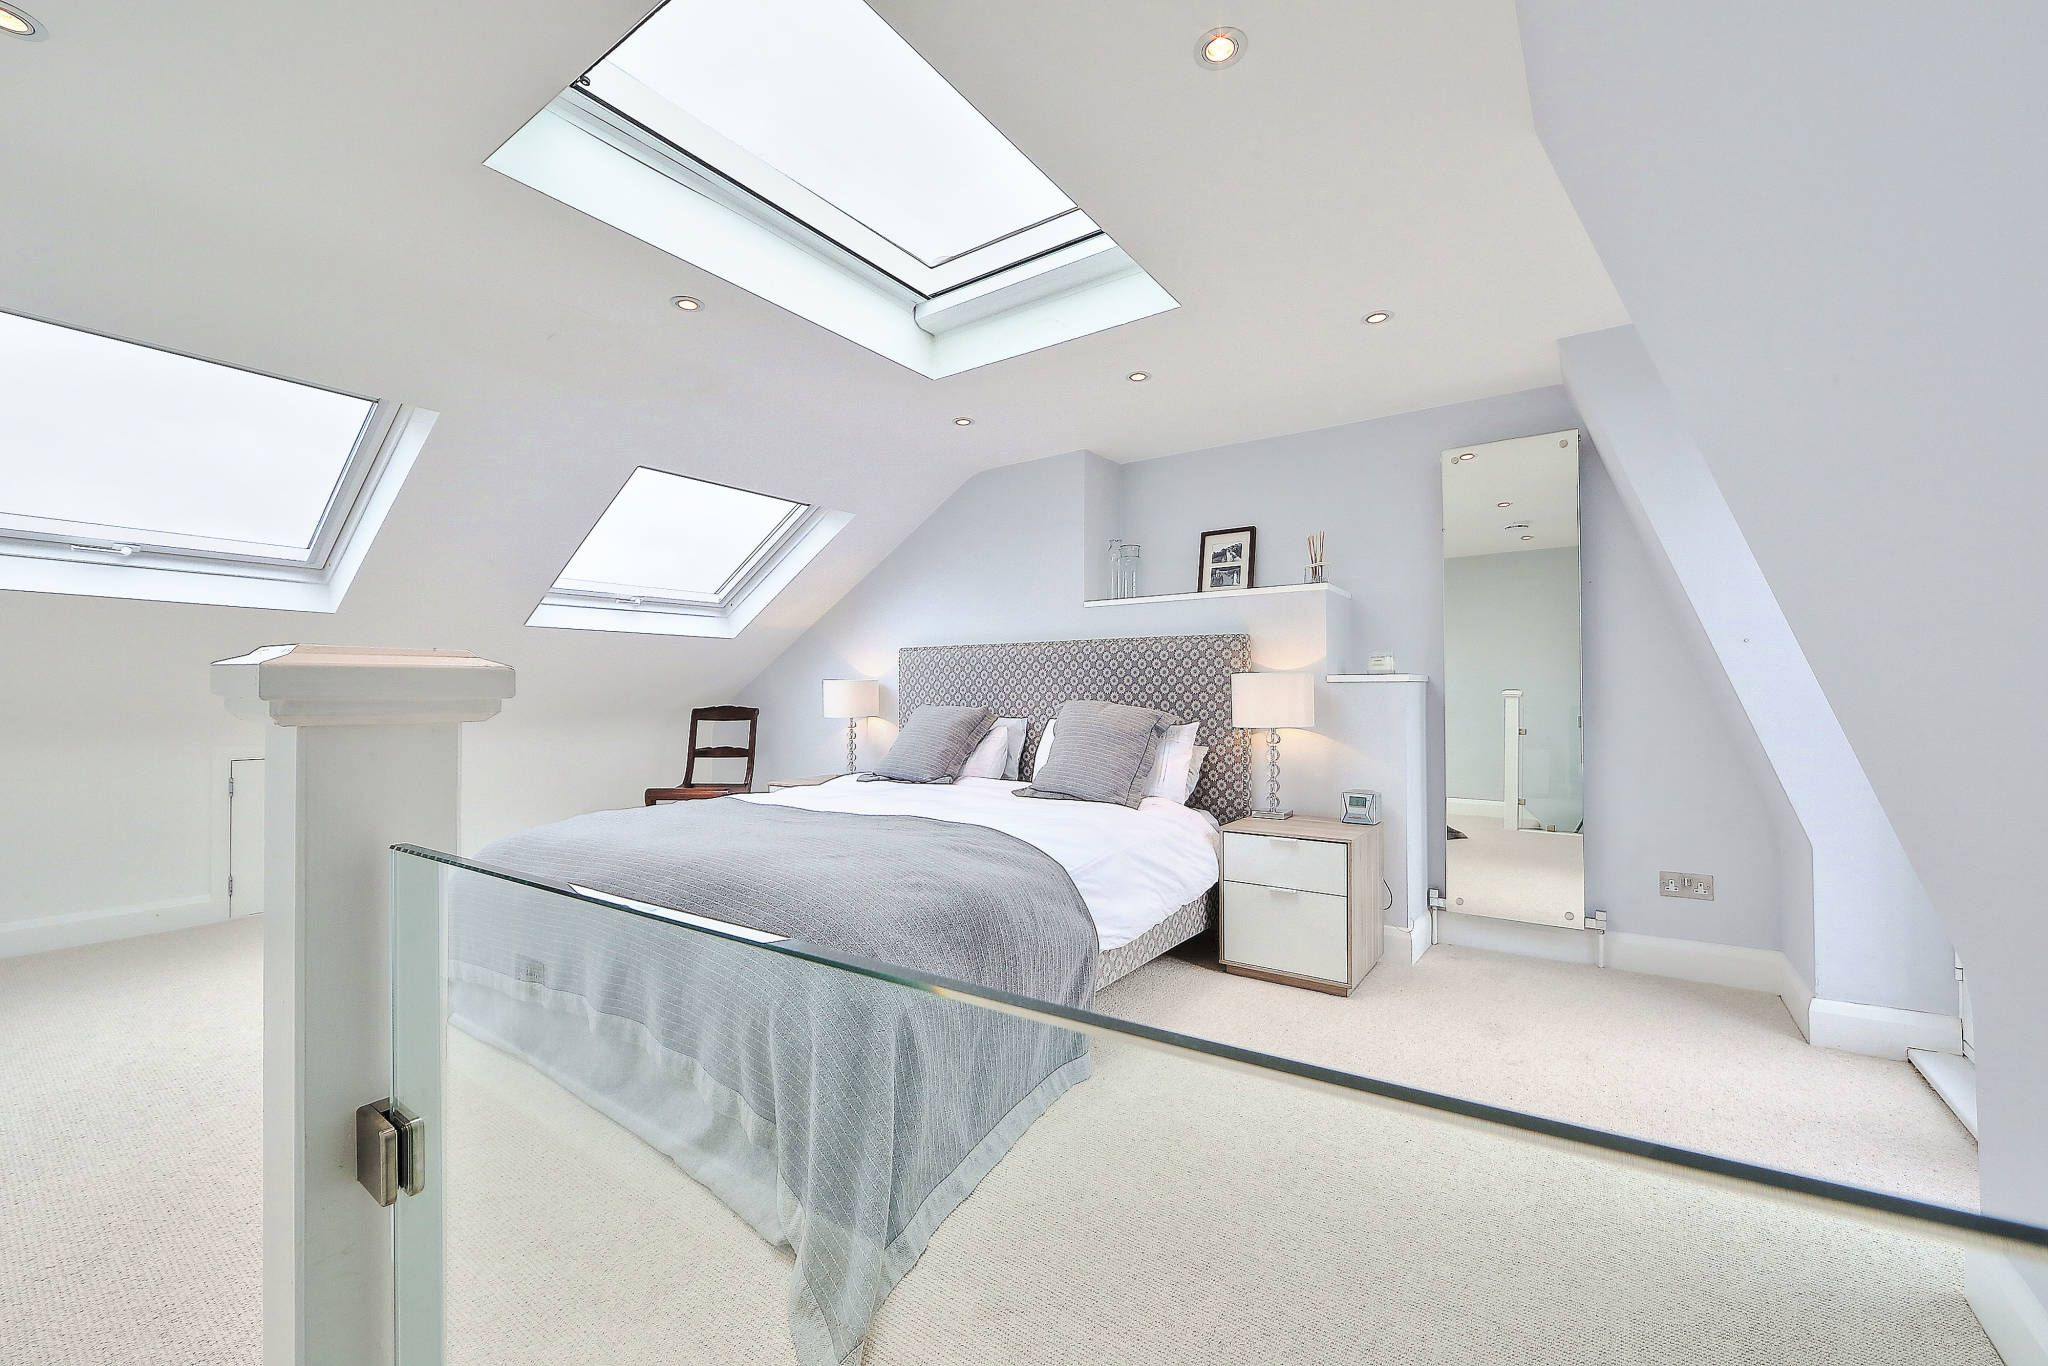 modern bedroom photos l shaped loft conversion wimbledon - Interior Design Ideas For L Shaped Bedroom